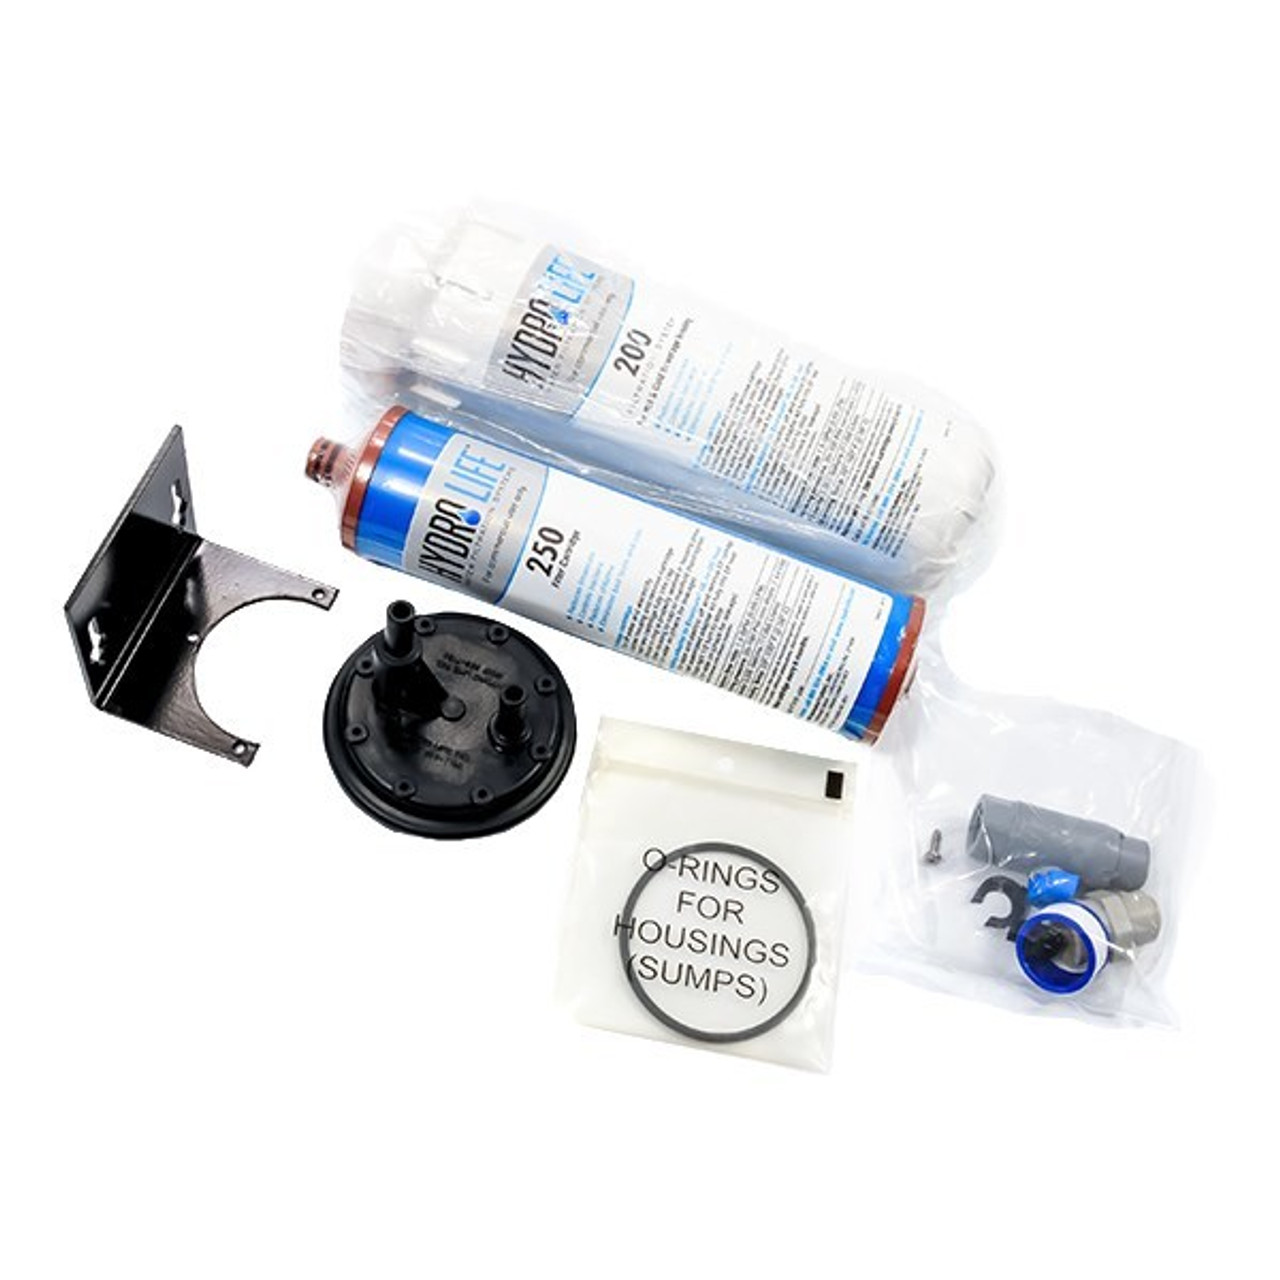 """200 Series Water Filter System, 9000 gallons (34,069 liters) capacity, KDF® triple water processing, removes or reduces limescale/chlorine/lead/algae & slime/bad taste & odor/bacteria, 100° F max temperature, includes: model 52622 cartridge, bracket, o-ring, 20-100 PSI, 1.5 GPM, 3/8"""" female NPT (for coffee urns, slush & OCS equipment, ice machines, water fountains, hot & cold cup vending equipment), NSF"""